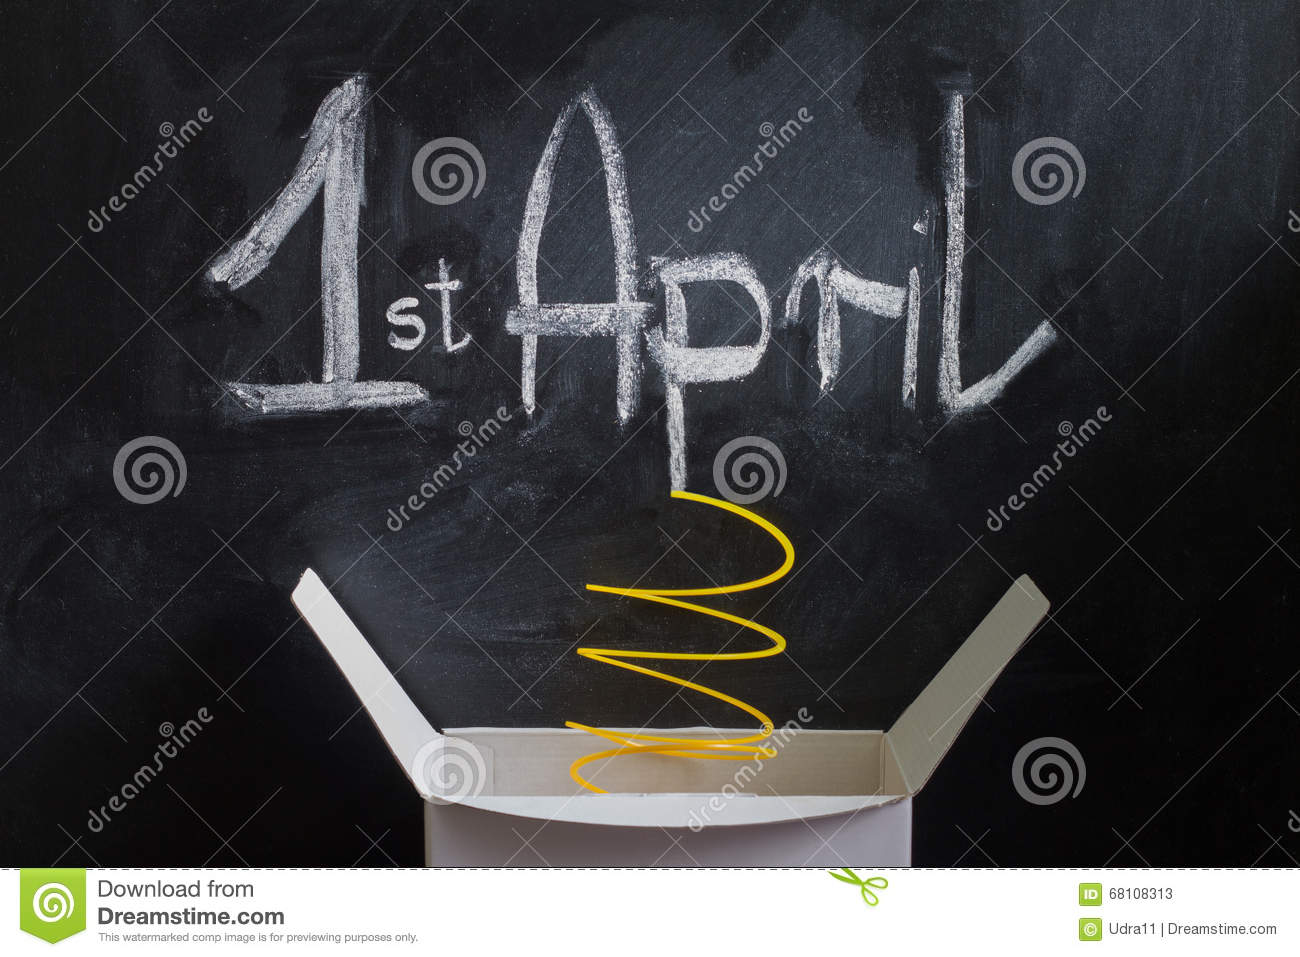 What is april fool's background?